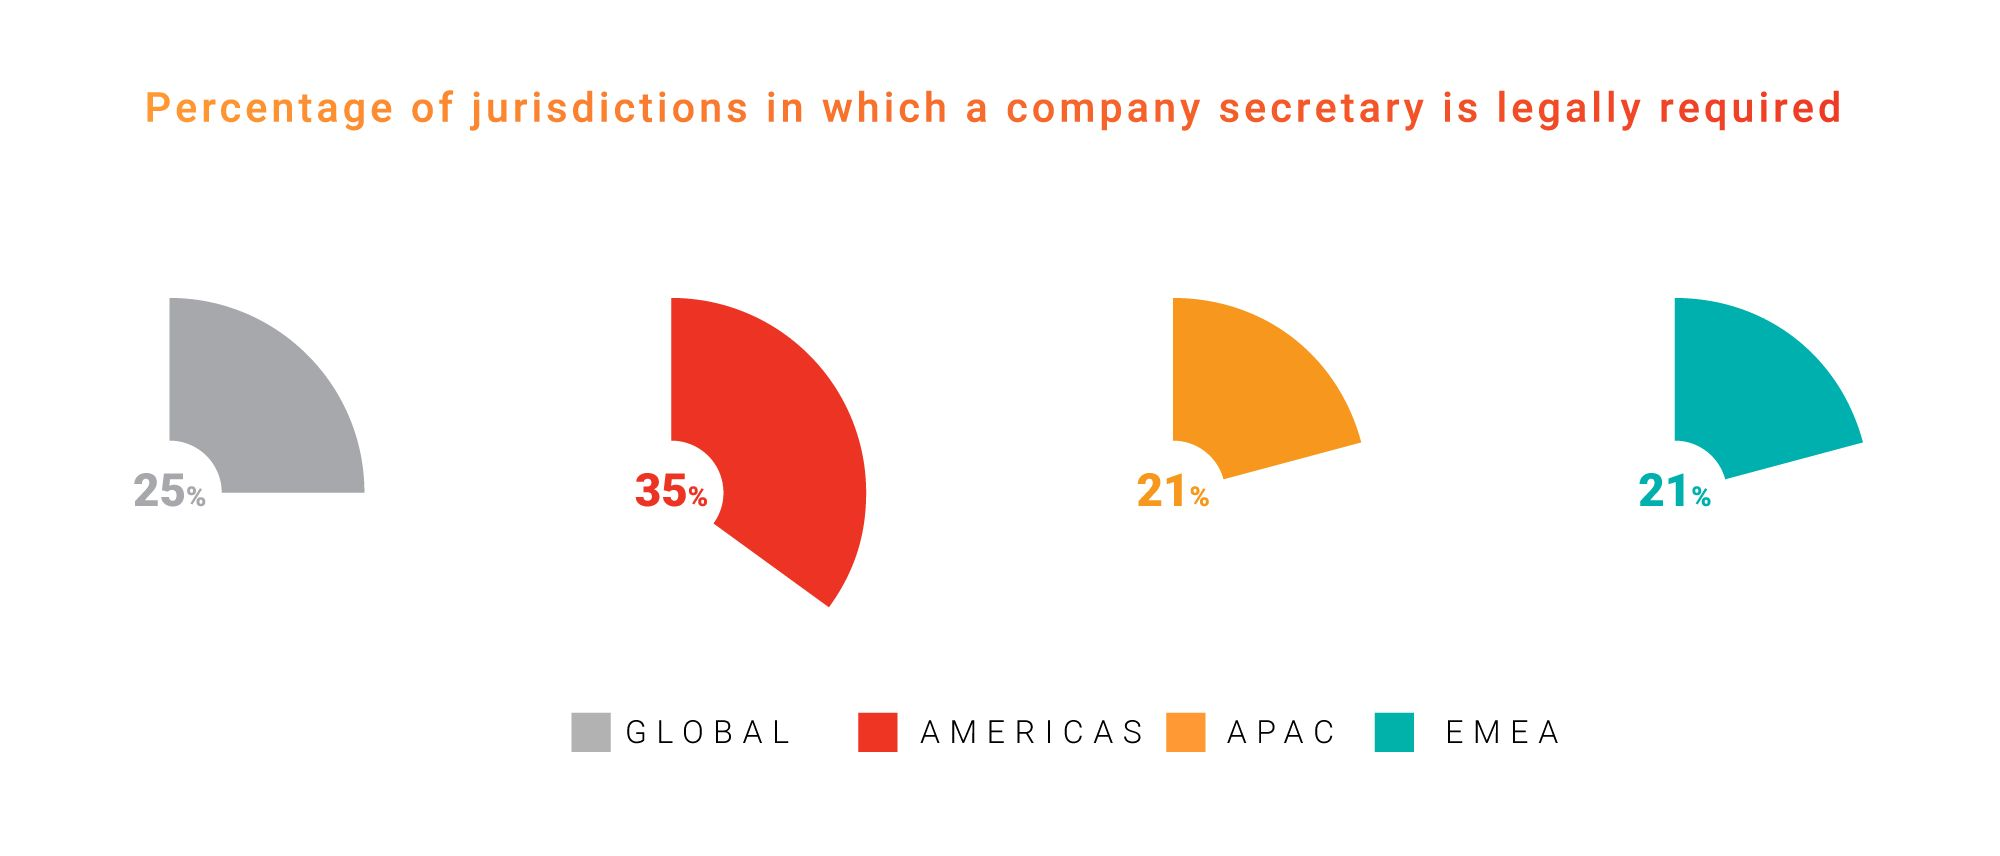 Percentage of jurisdiction a company secretarial is legally required